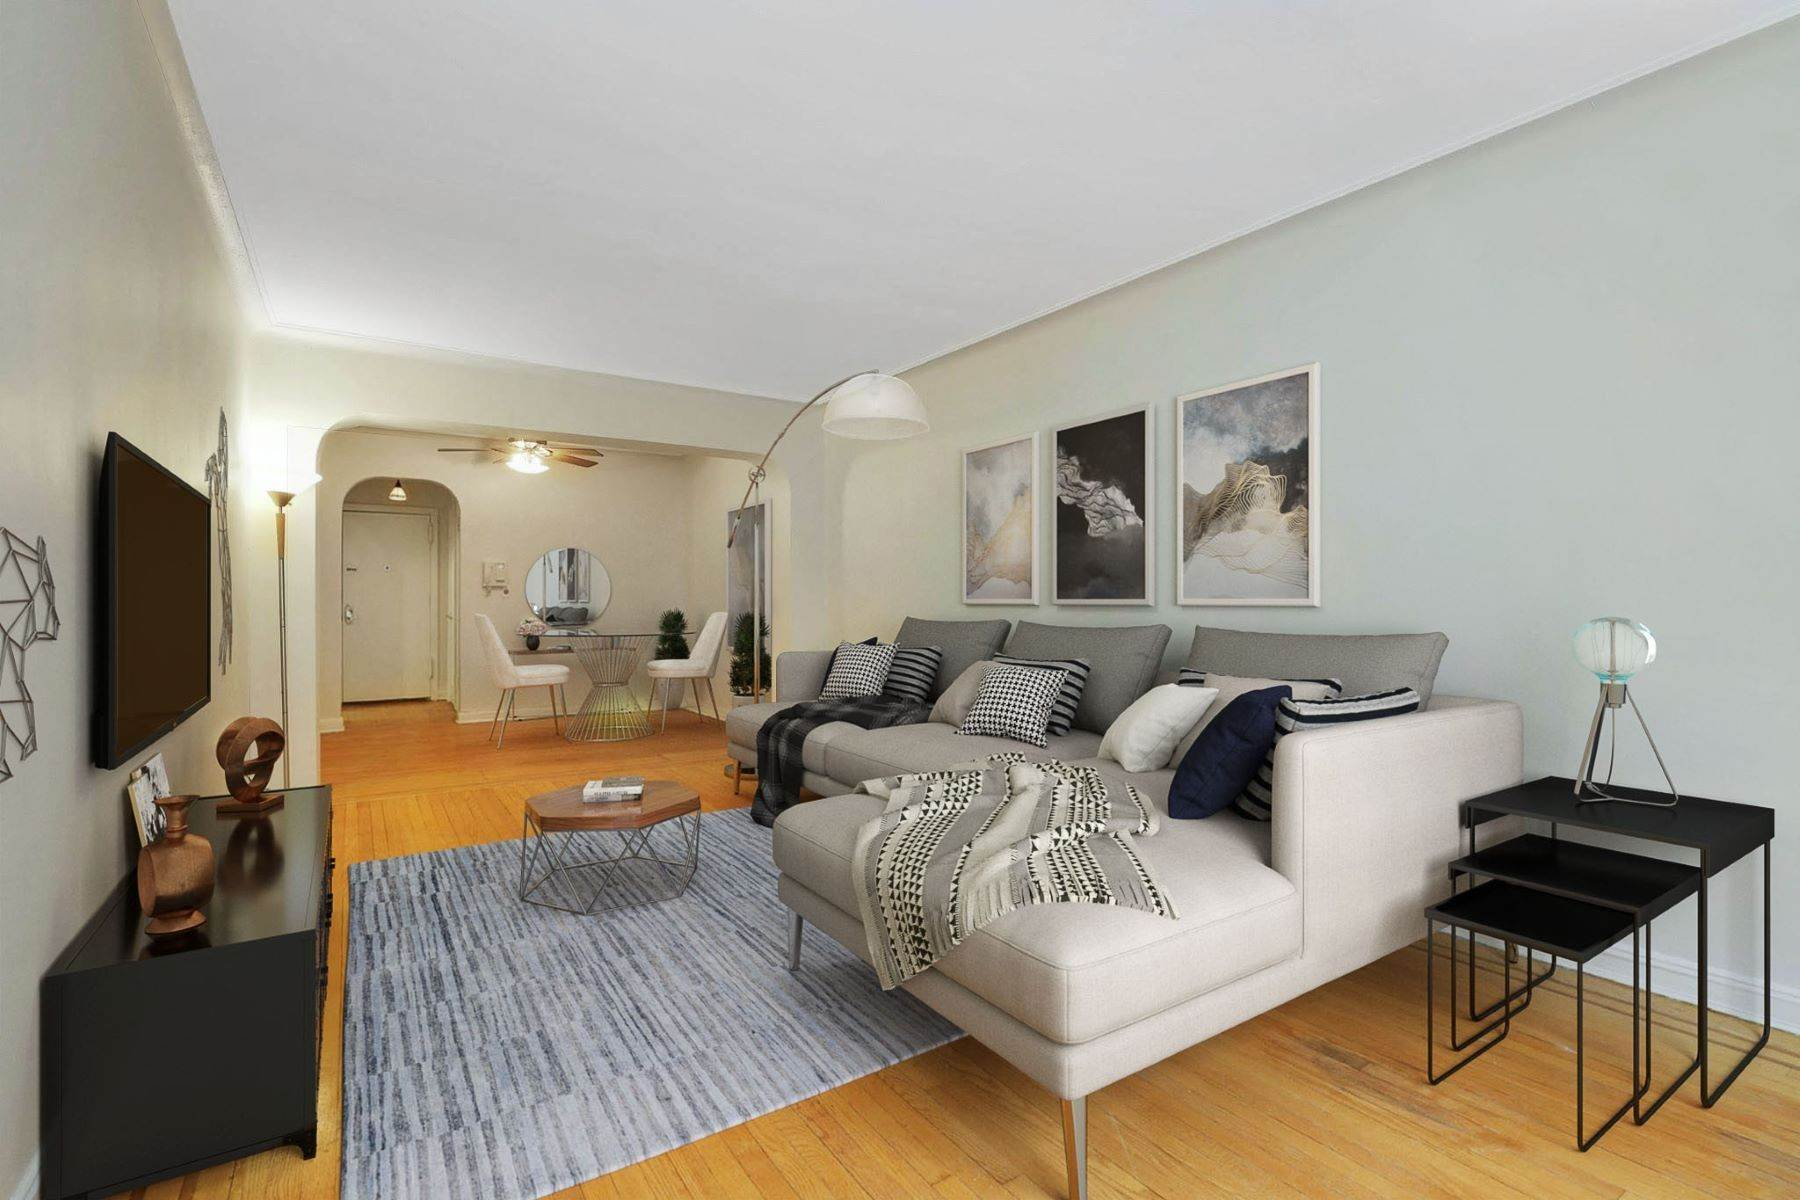 Co-op Properties for Sale at 35-24 78th Street, Jackson Heights, Ny, 11372 35-24 78th Street, Unit# A11 Jackson Heights, New York 11372 United States